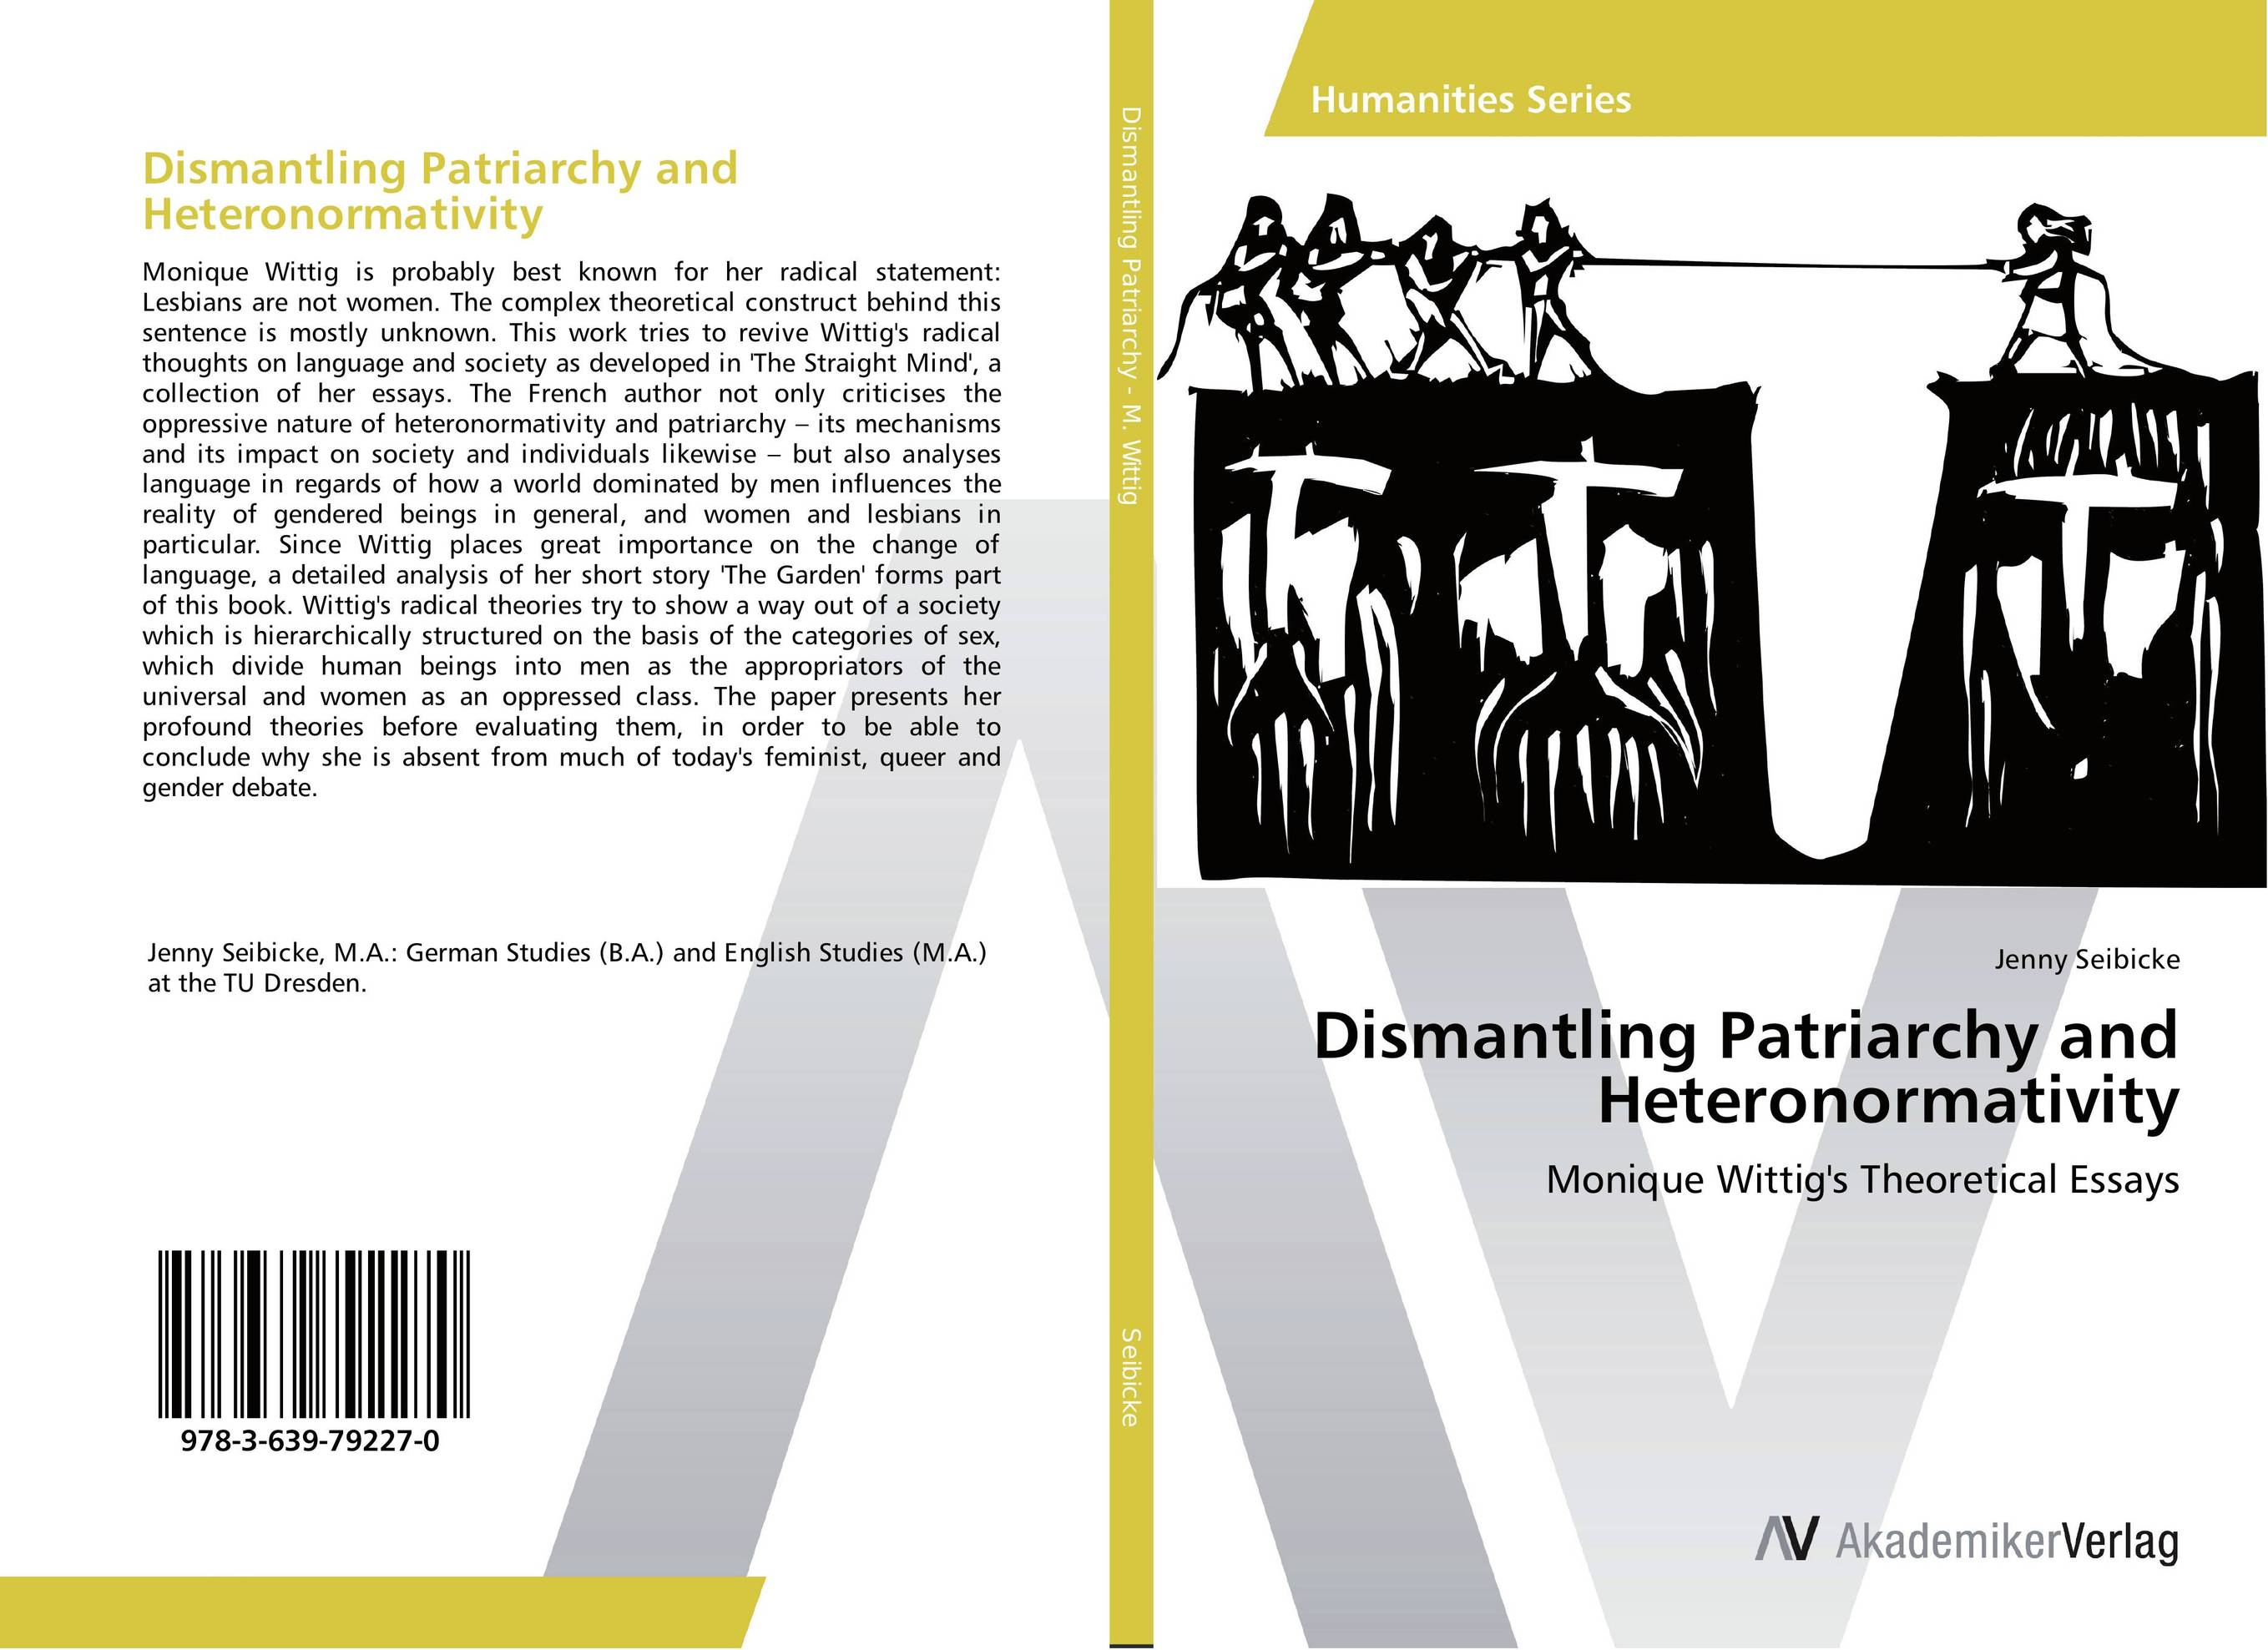 Dismantling Patriarchy and Heteronormativity duncan bruce the dream cafe lessons in the art of radical innovation